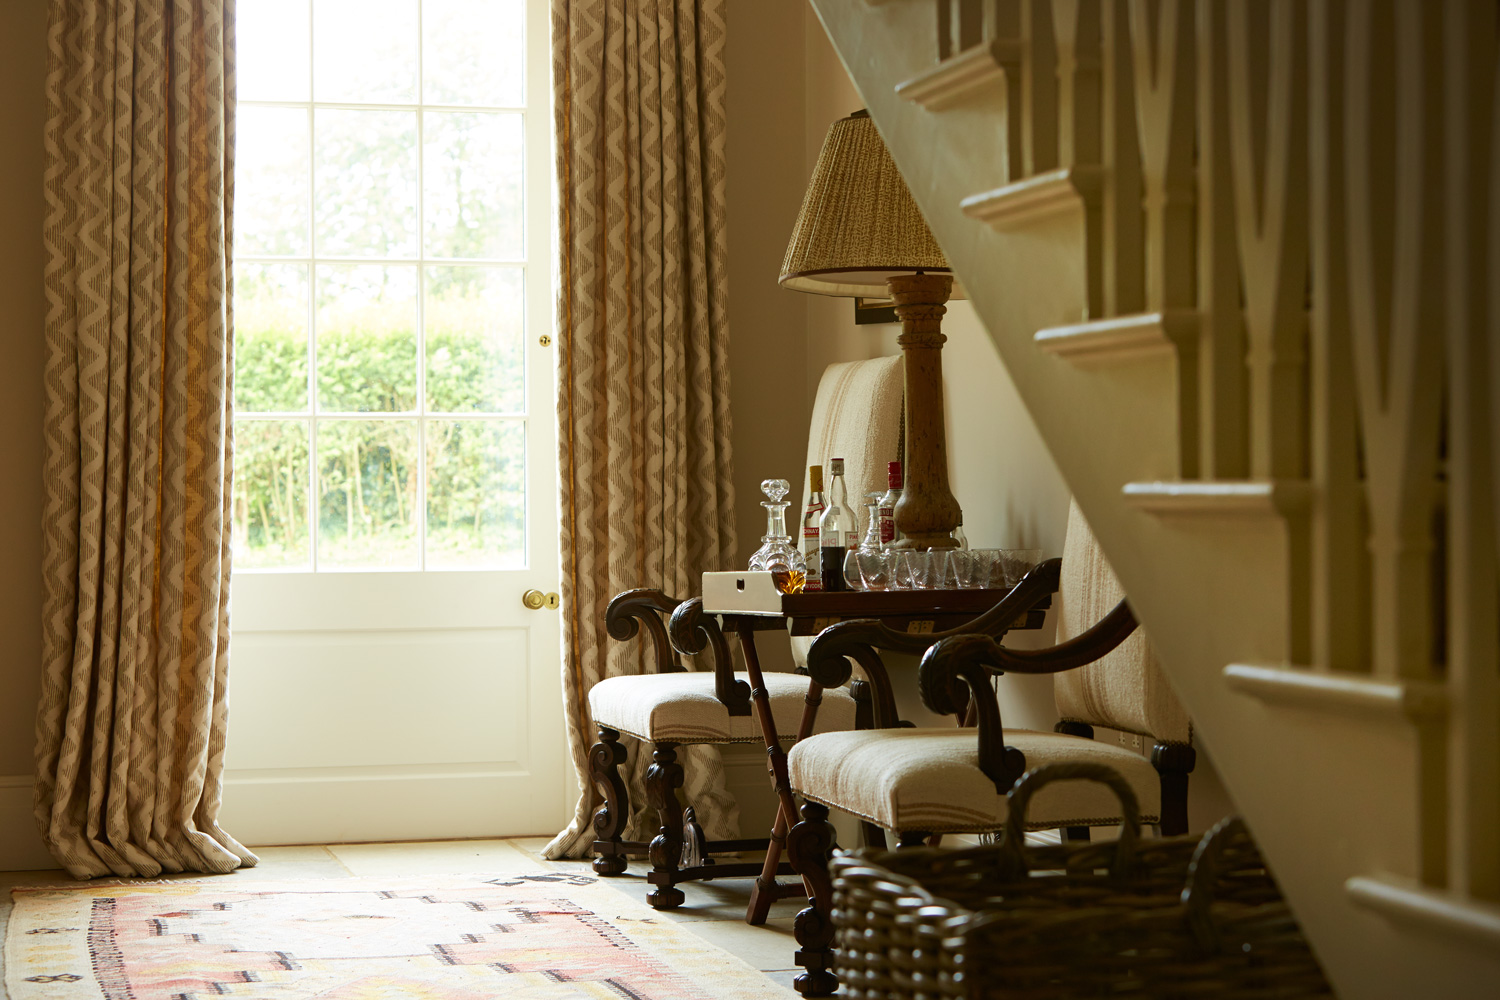 Hall chairs – interior design by Eadie & Crole